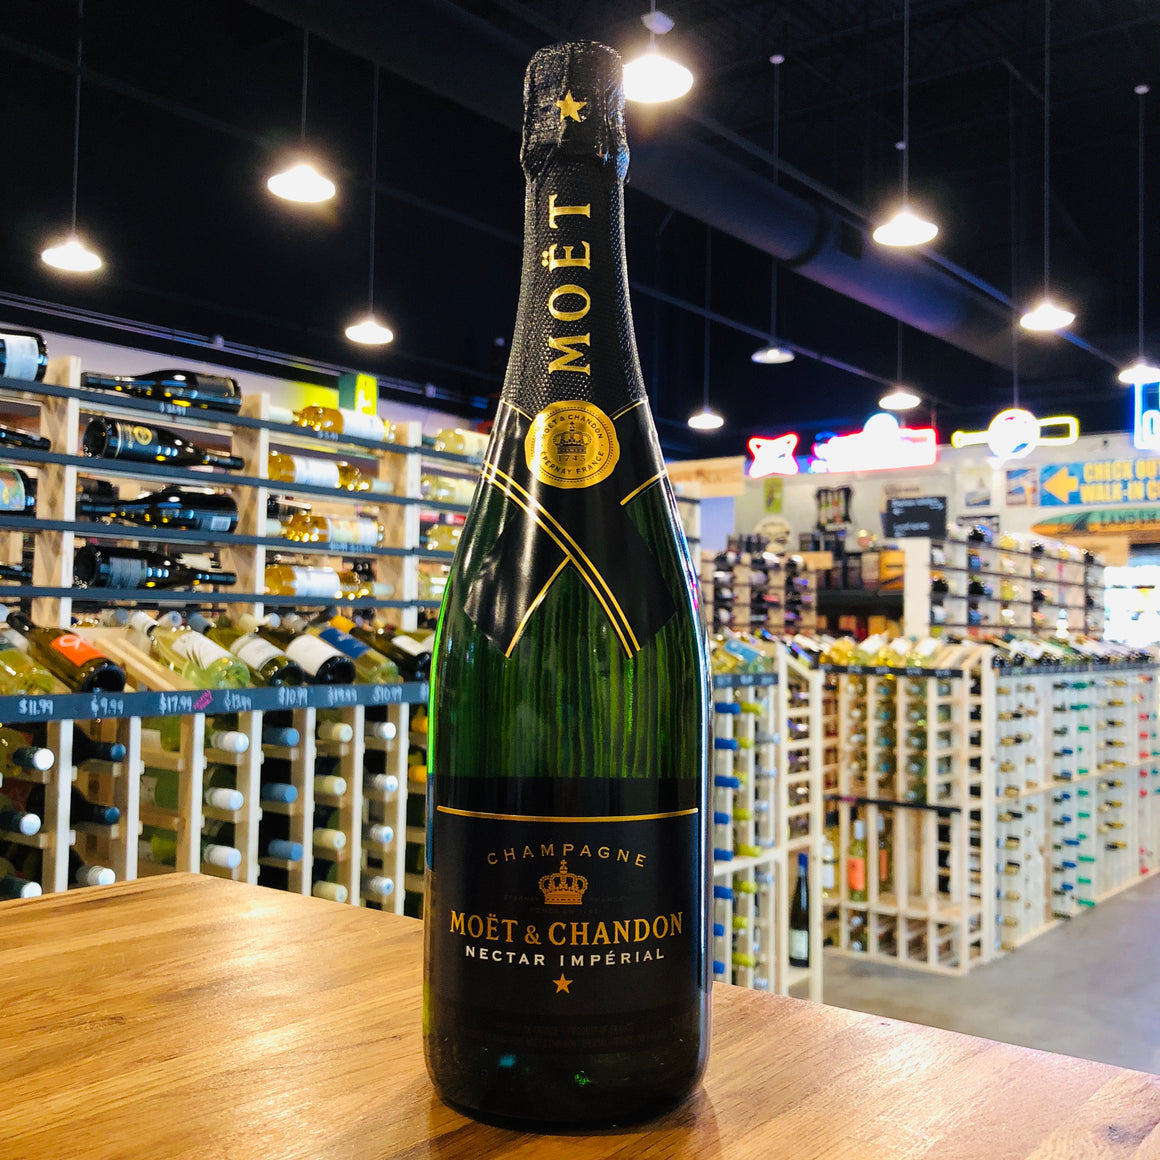 MOET & CHANDON NECTAR IMPERIAL CHAMPAGNE 750ML